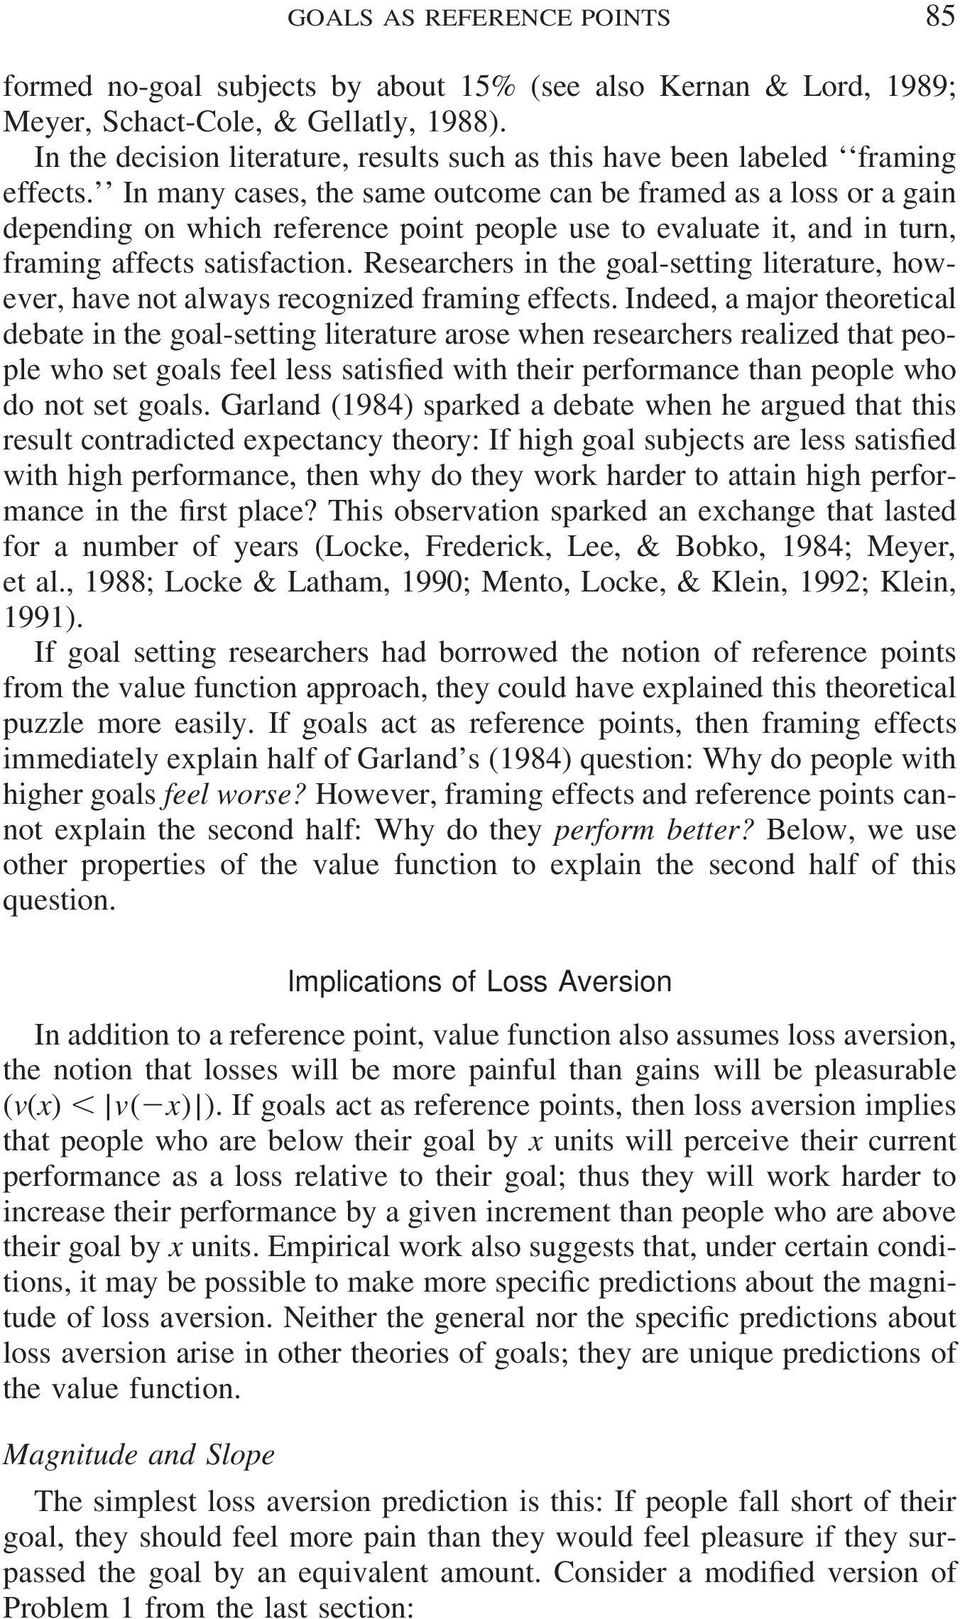 In many cases, the same outcome can be framed as a loss or a gain depending on which reference point people use to evaluate it, and in turn, framing affects satisfaction.